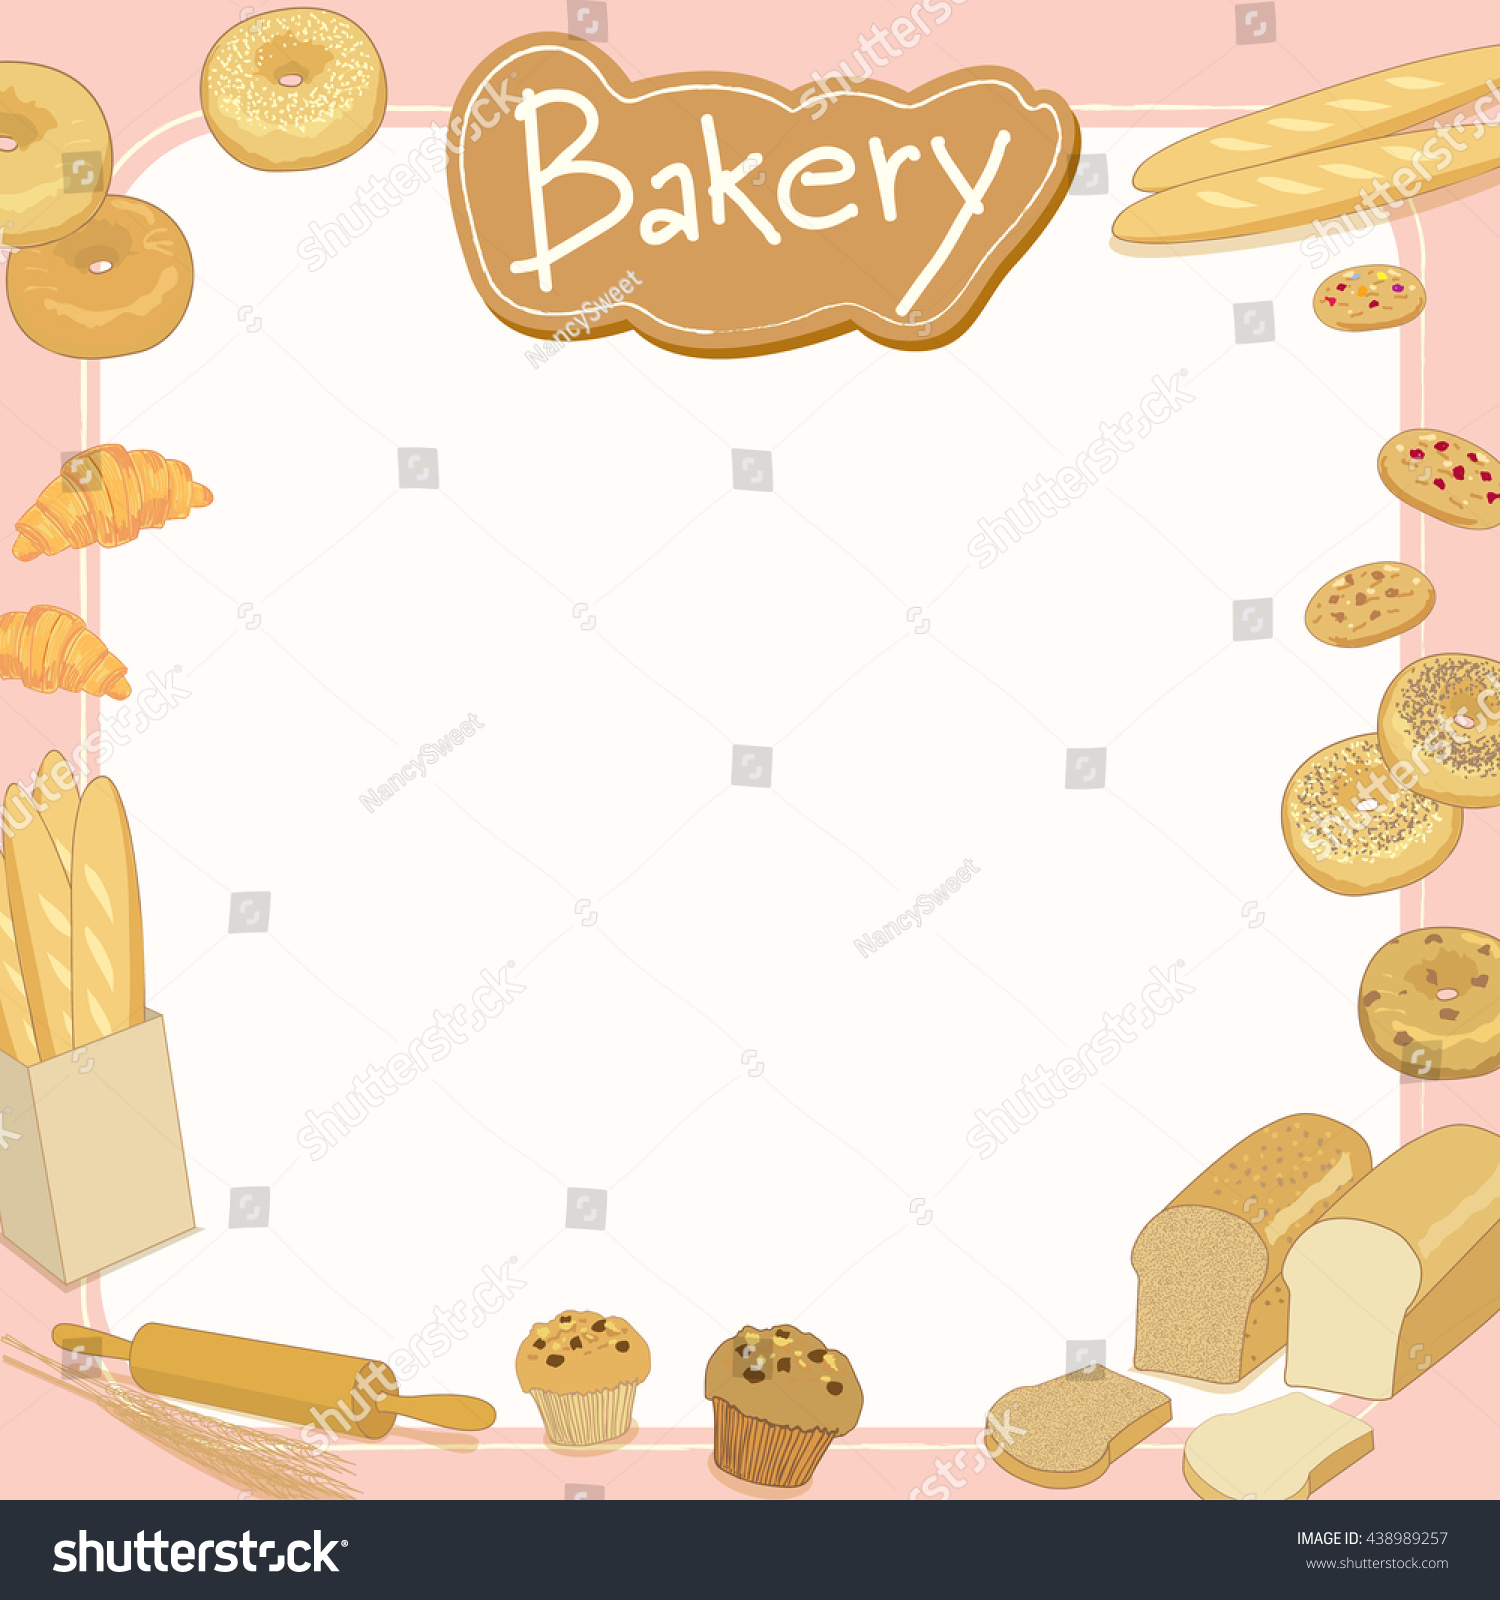 Menu Template Design Vector Illustration.bakery Cafe Shop.blank For Your  Message,text